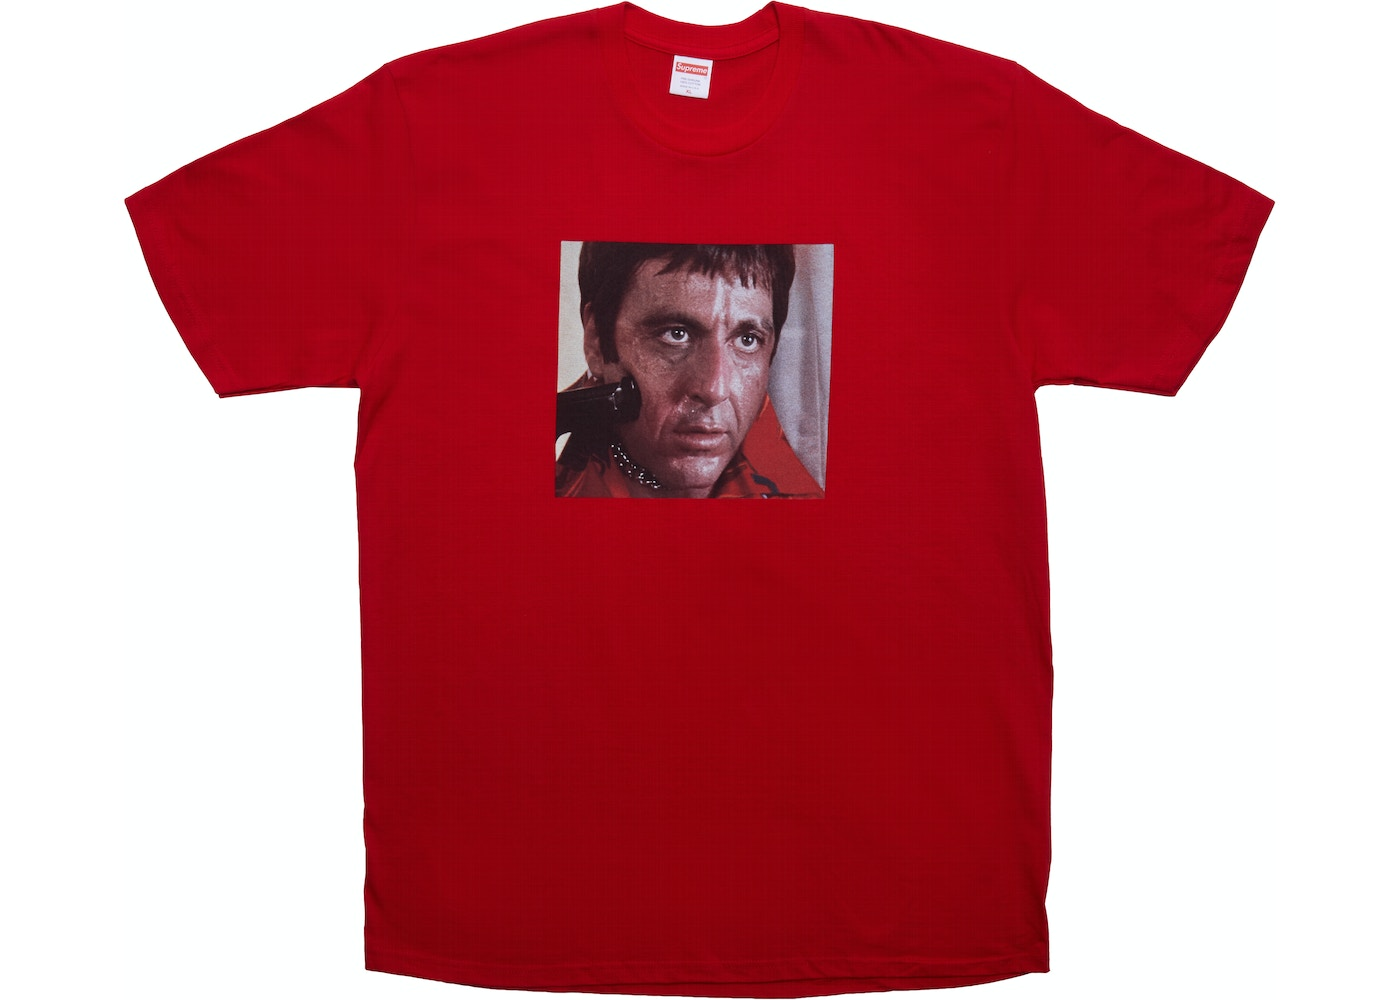 df54f5248890 Supreme Scarface Shower Tee Red - FW17